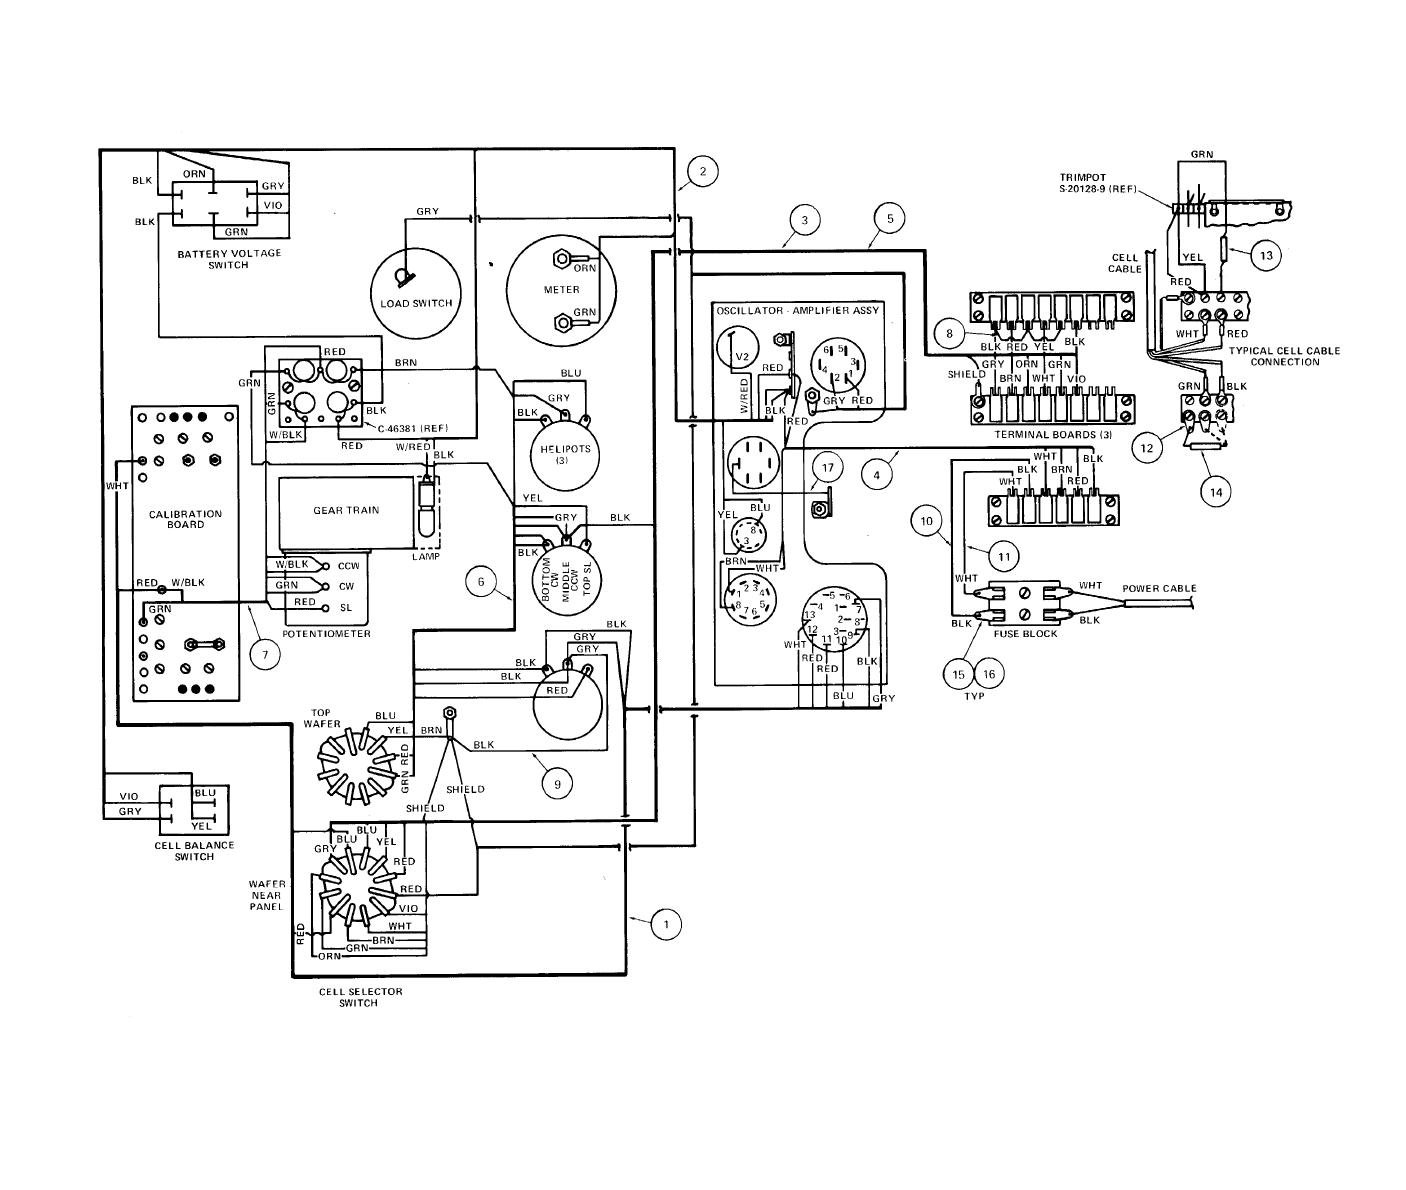 TM 55 6670 200 14 P0032im figure 4 3 indicator assembly wiring diagram (model m 1) charvel model 4 wiring diagram at readyjetset.co